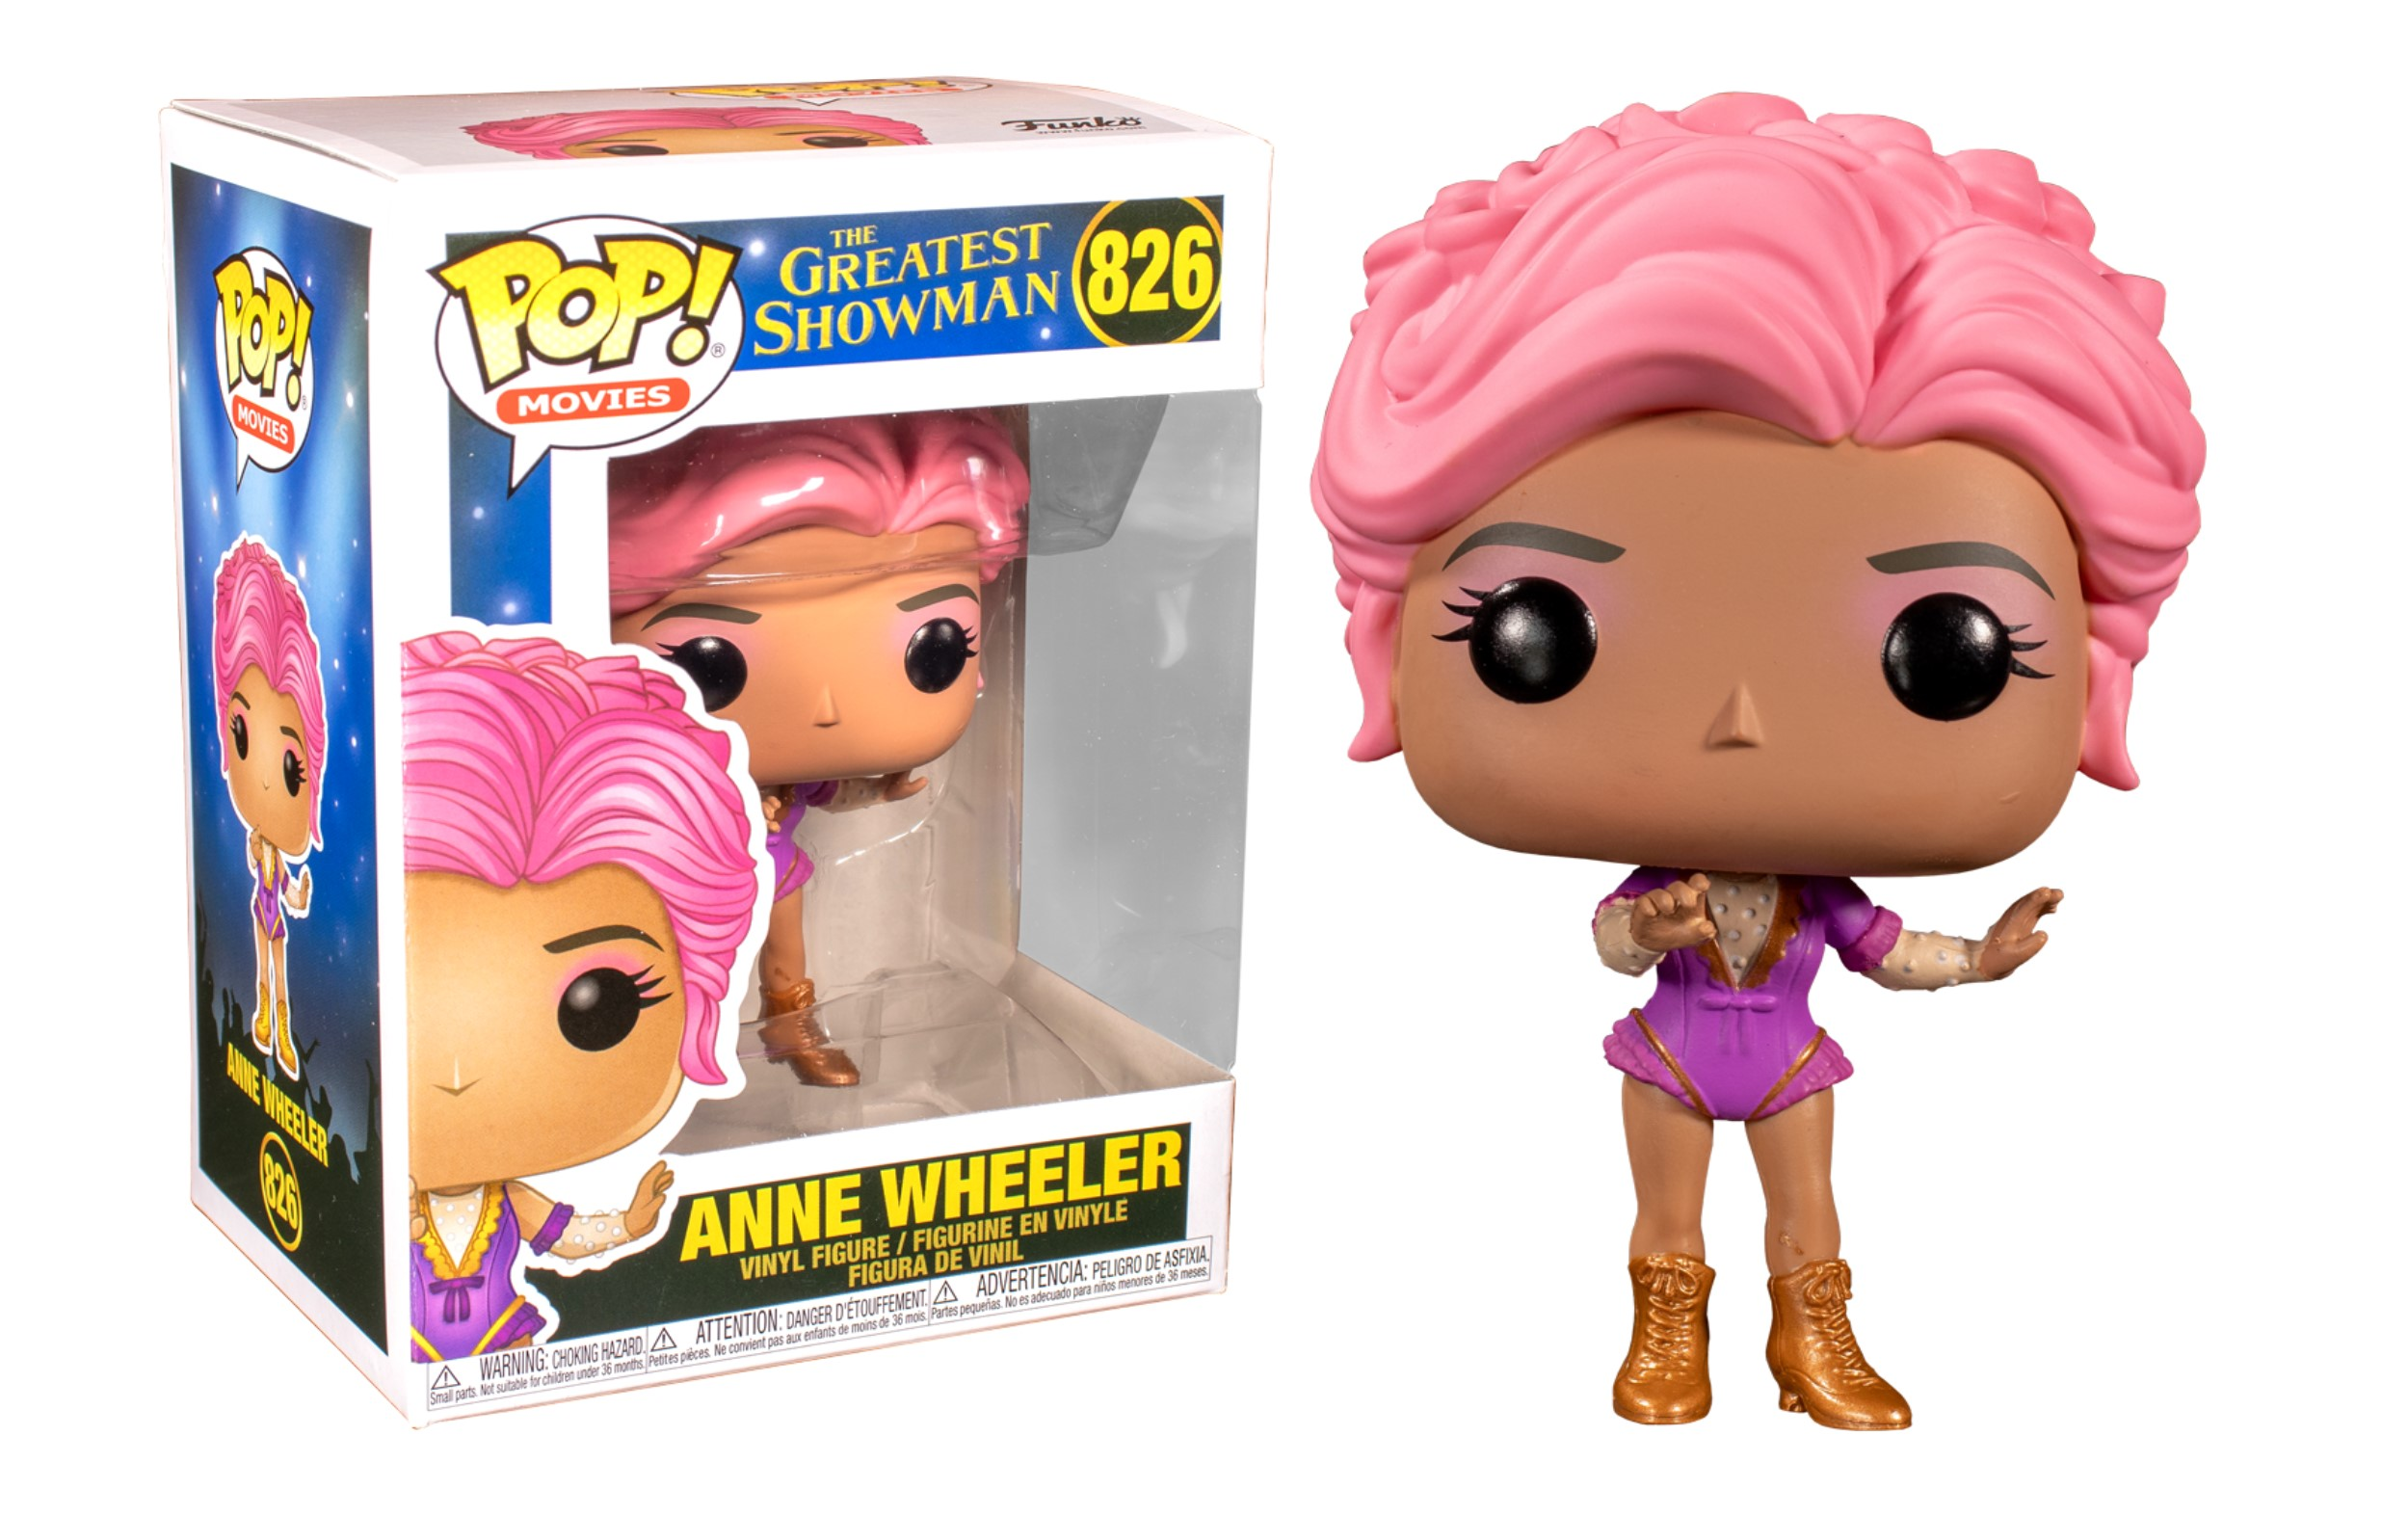 The Greatest Showman Anne Wheeler 825 Funko POP Vinyl Figure